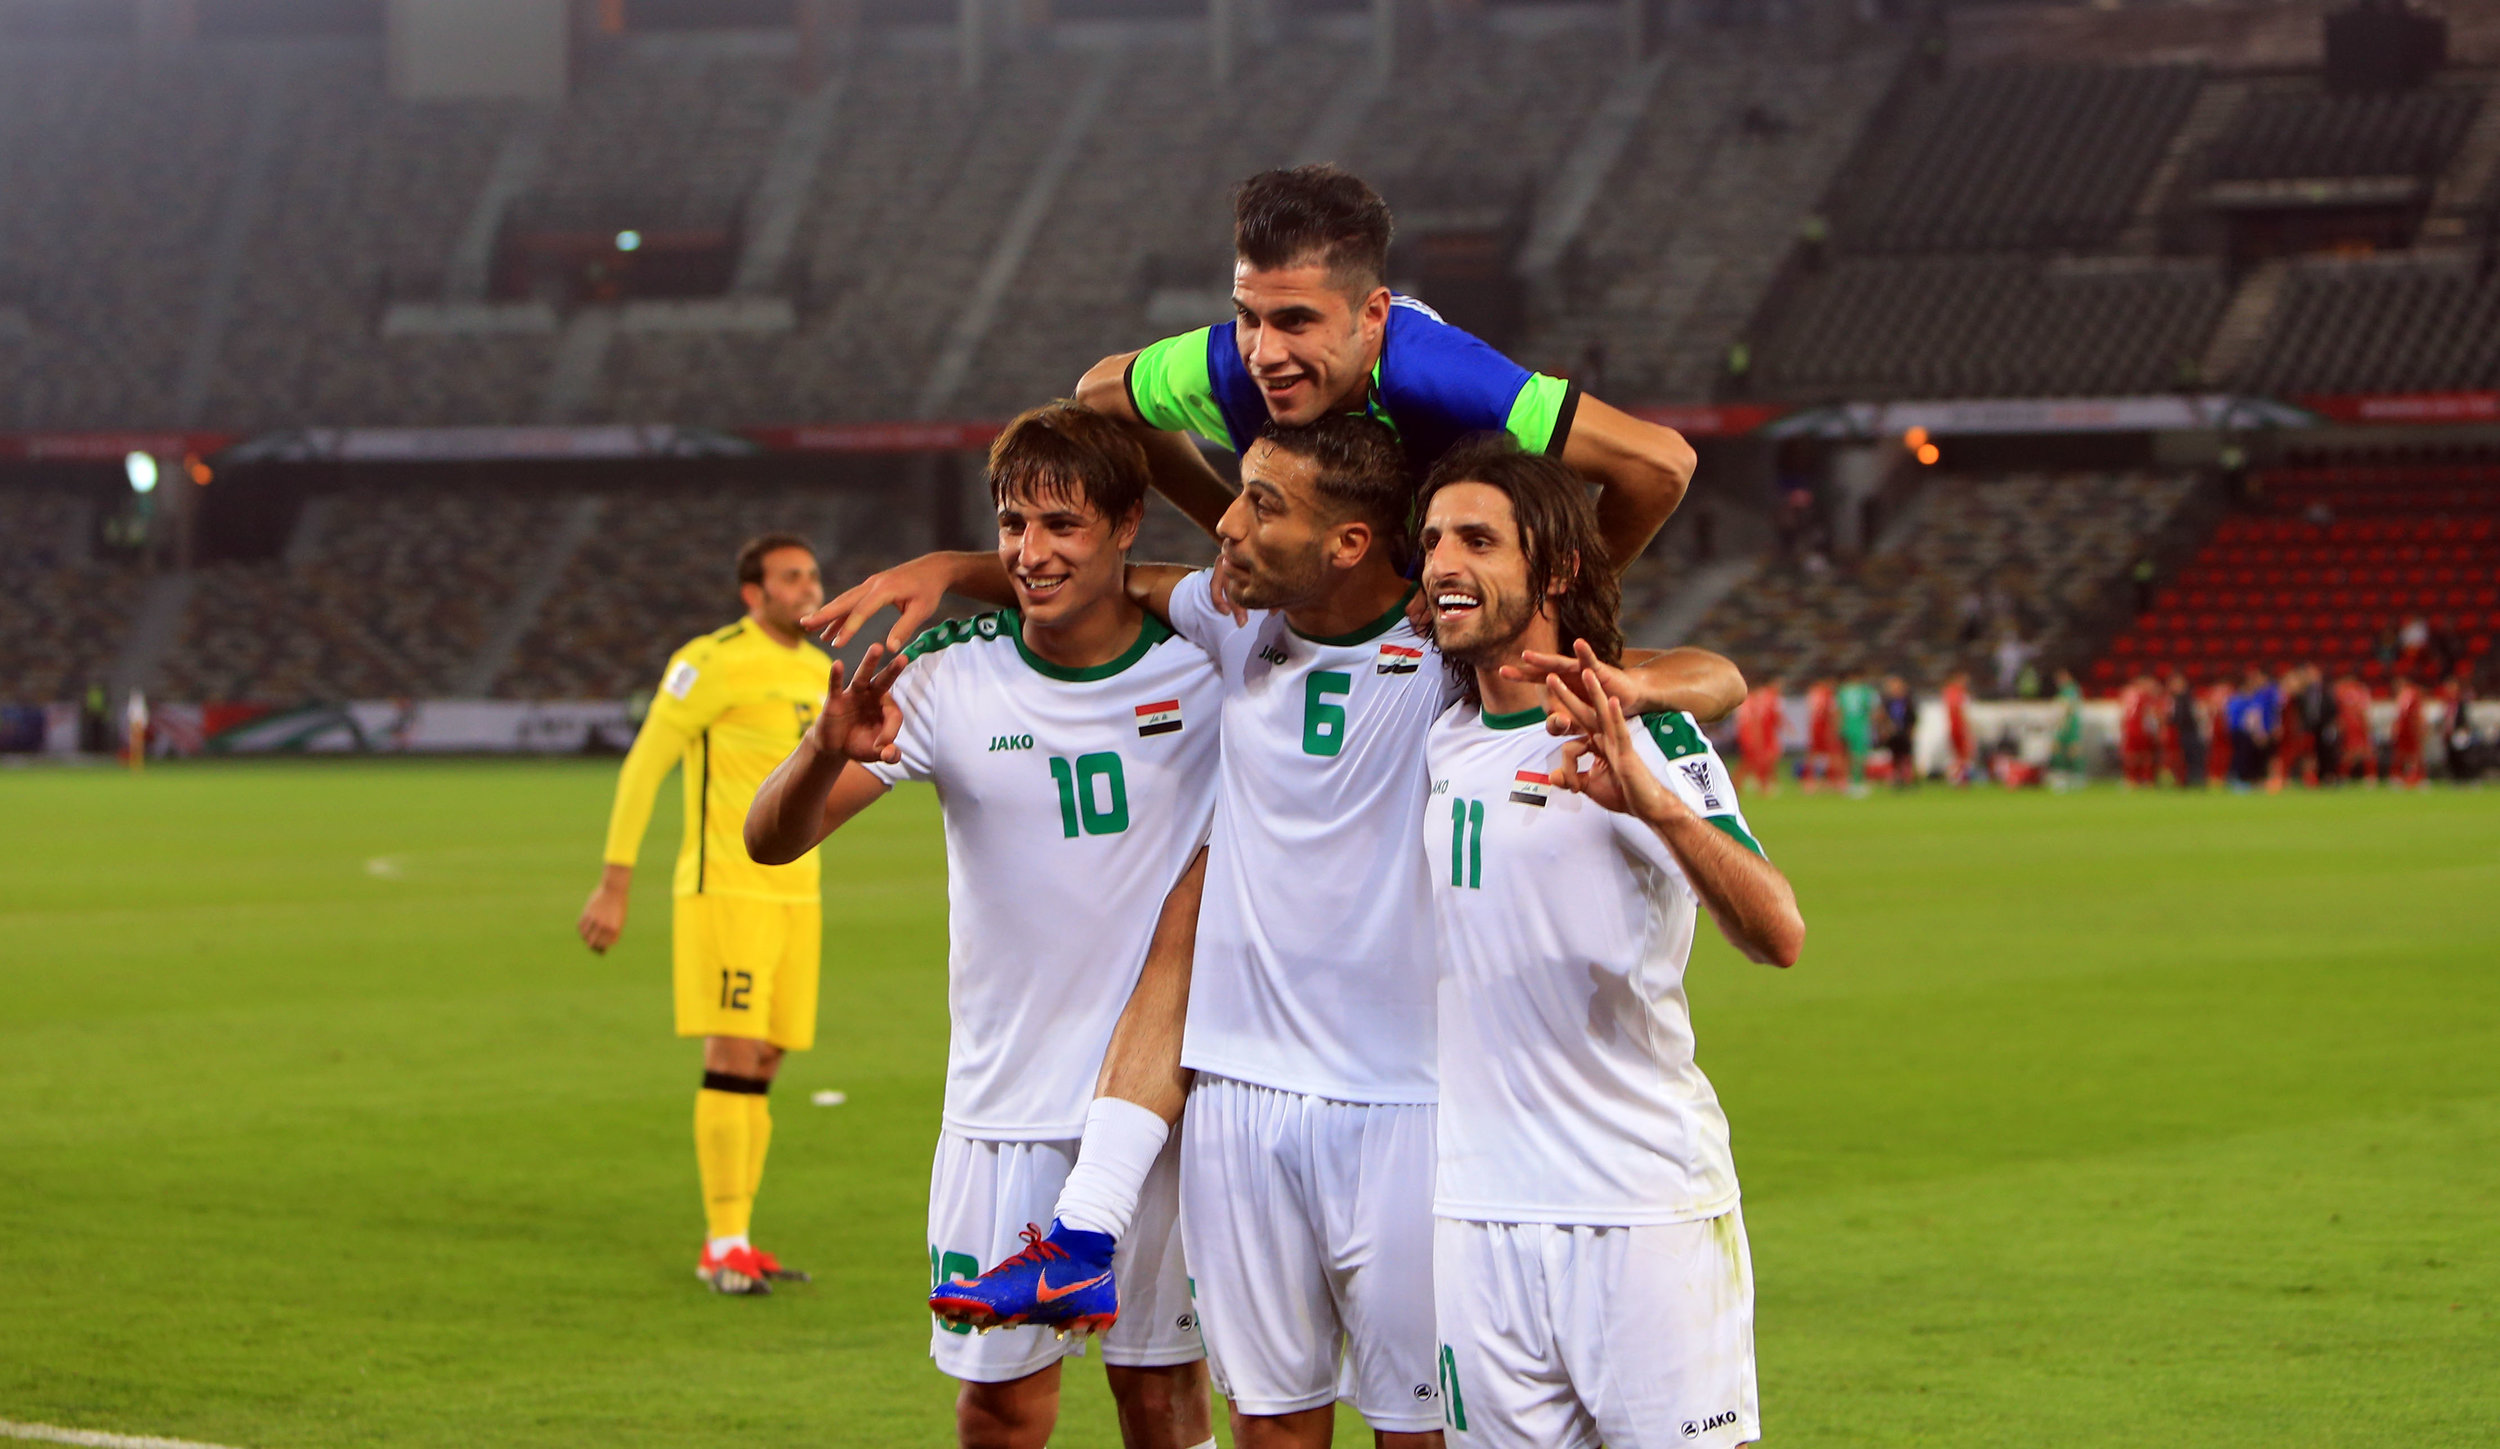 Mohanad Ali, Ali Adnan and Humam Tariq, brought the first win to Iraq (2019 Asian Football Confederation (AFC))